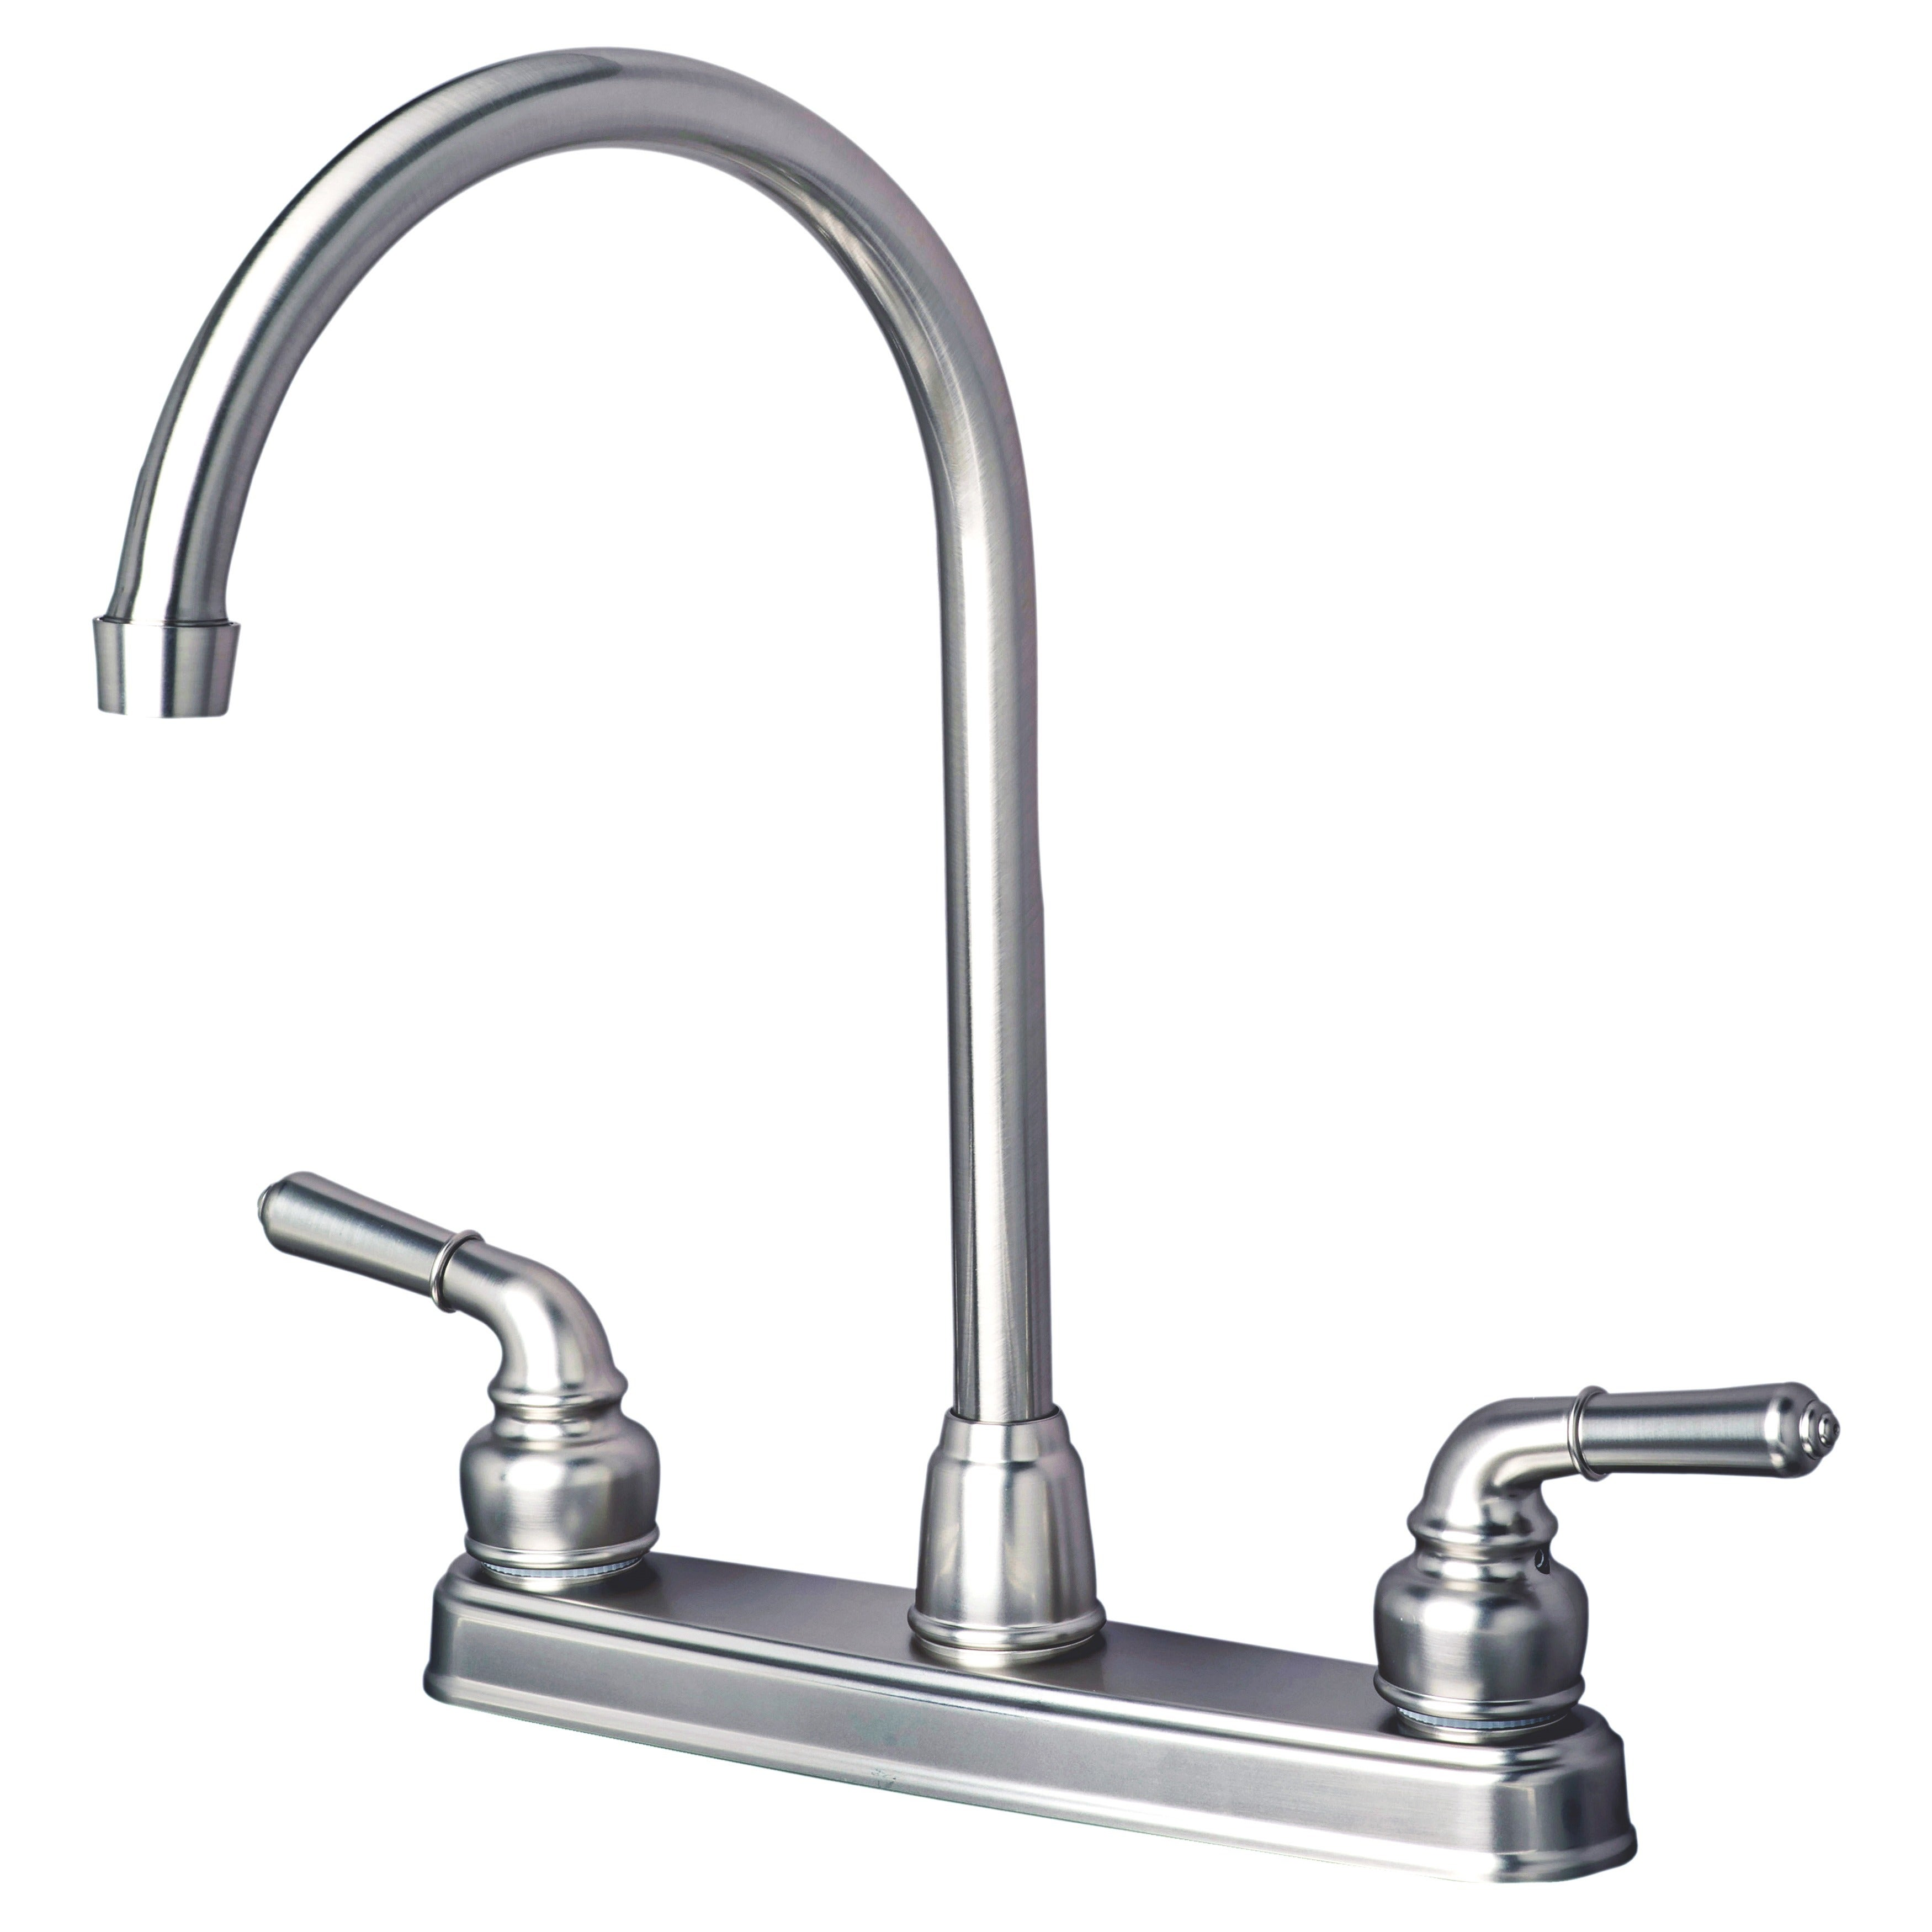 Builders Shoppe 1201 Rv Mobile Home Replacement High Arc Swivel Kitchen Faucet On Sale Overstock 15921244